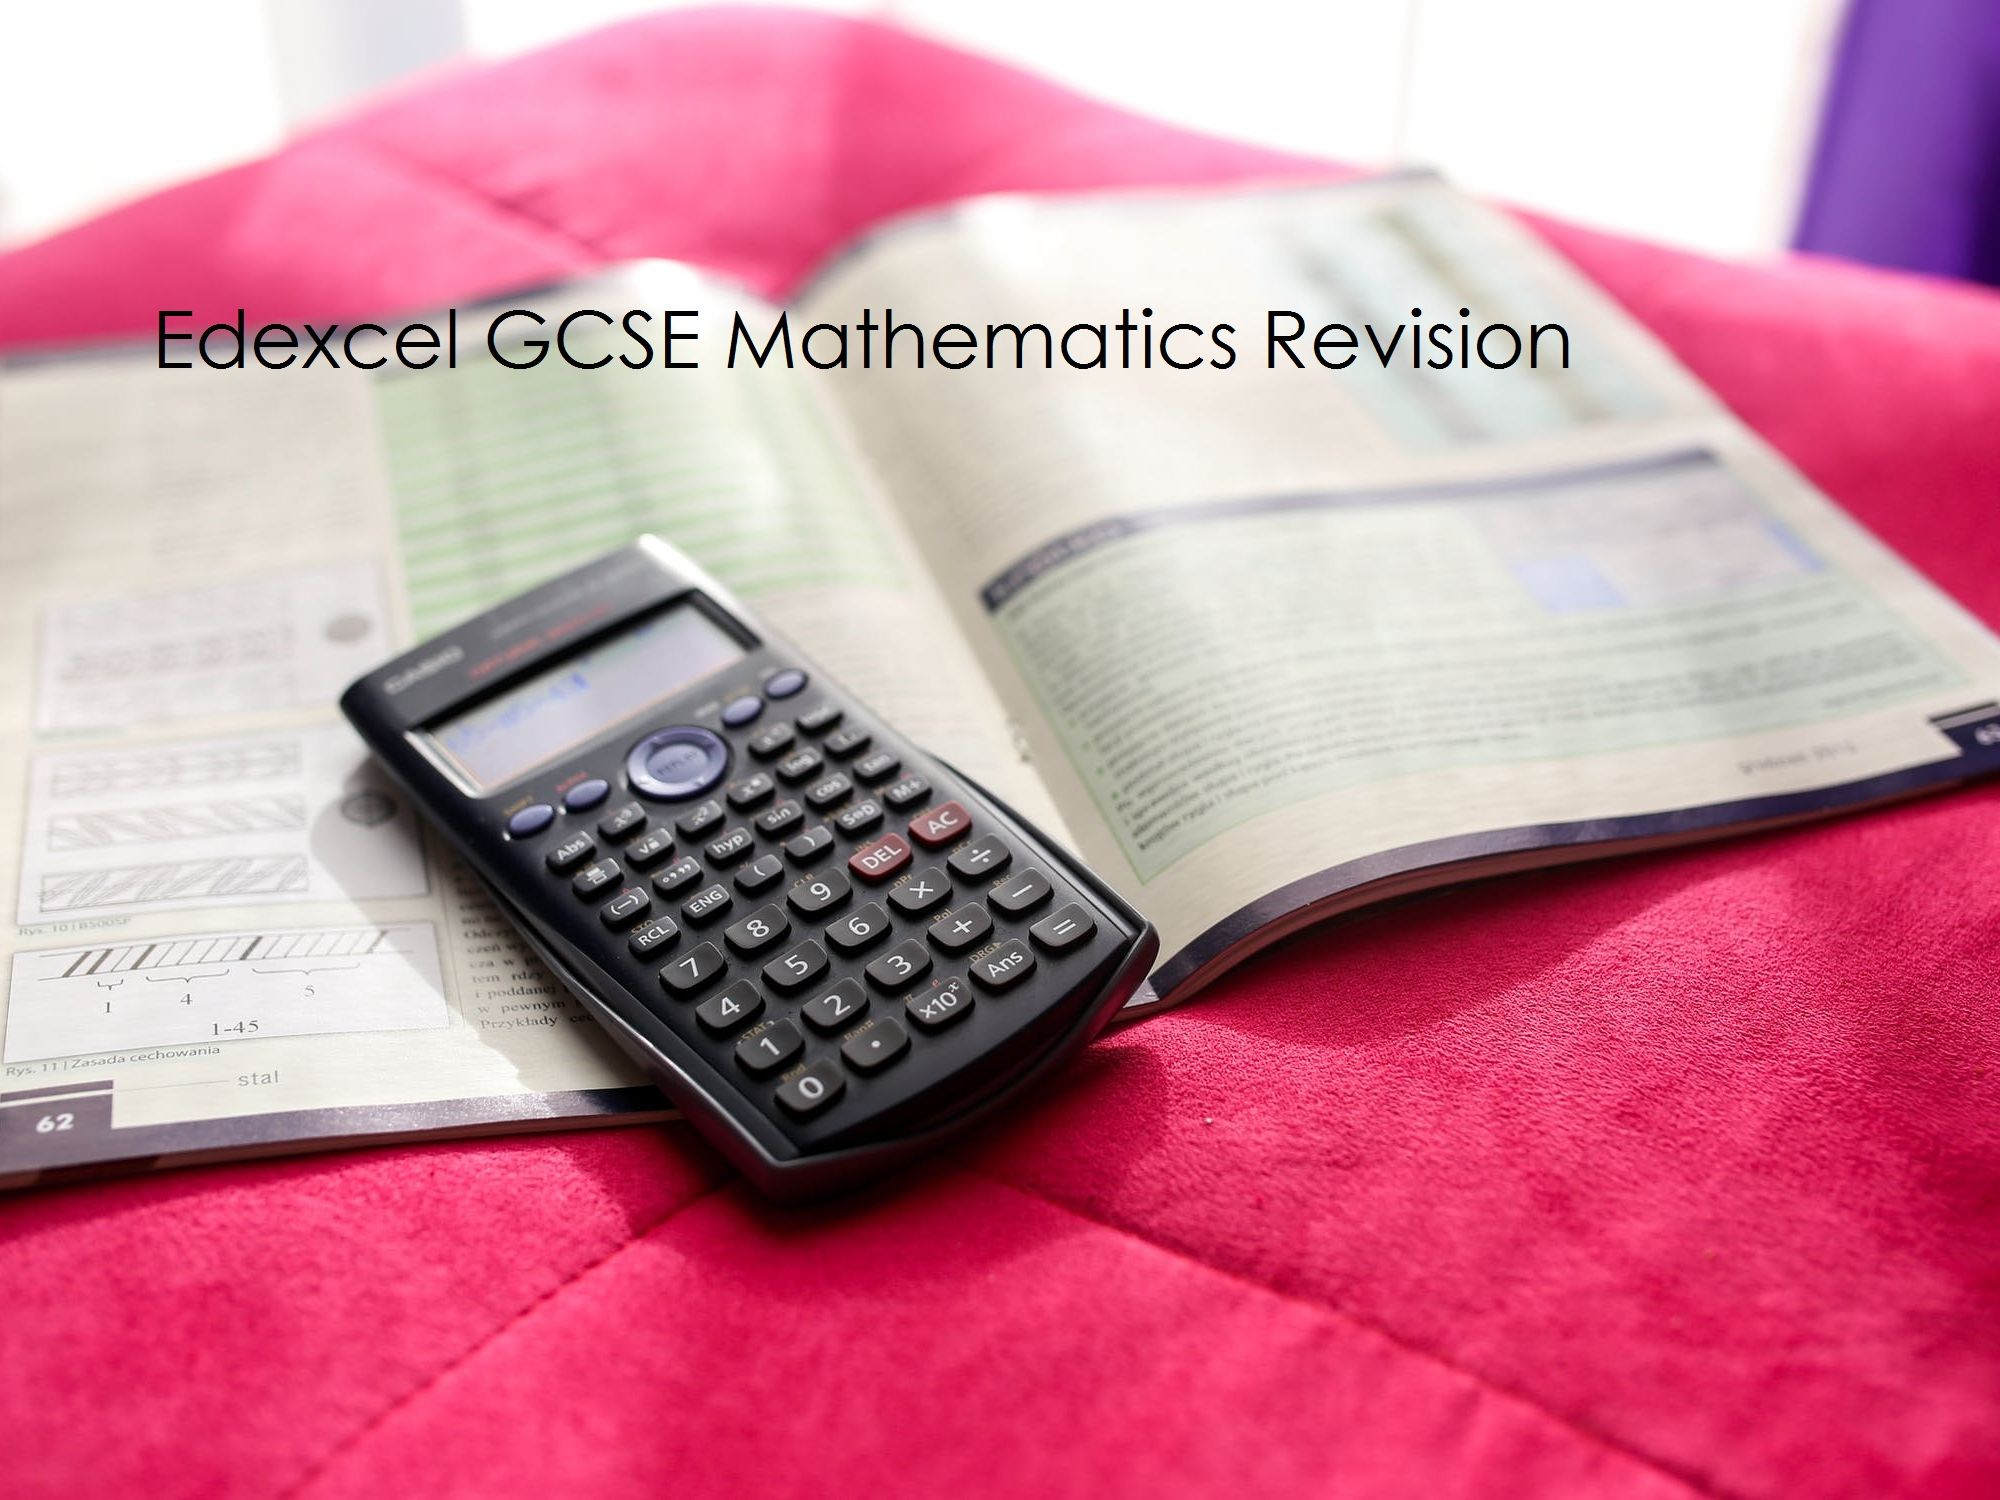 Edexcel GCSE Mathematics Revision Resources